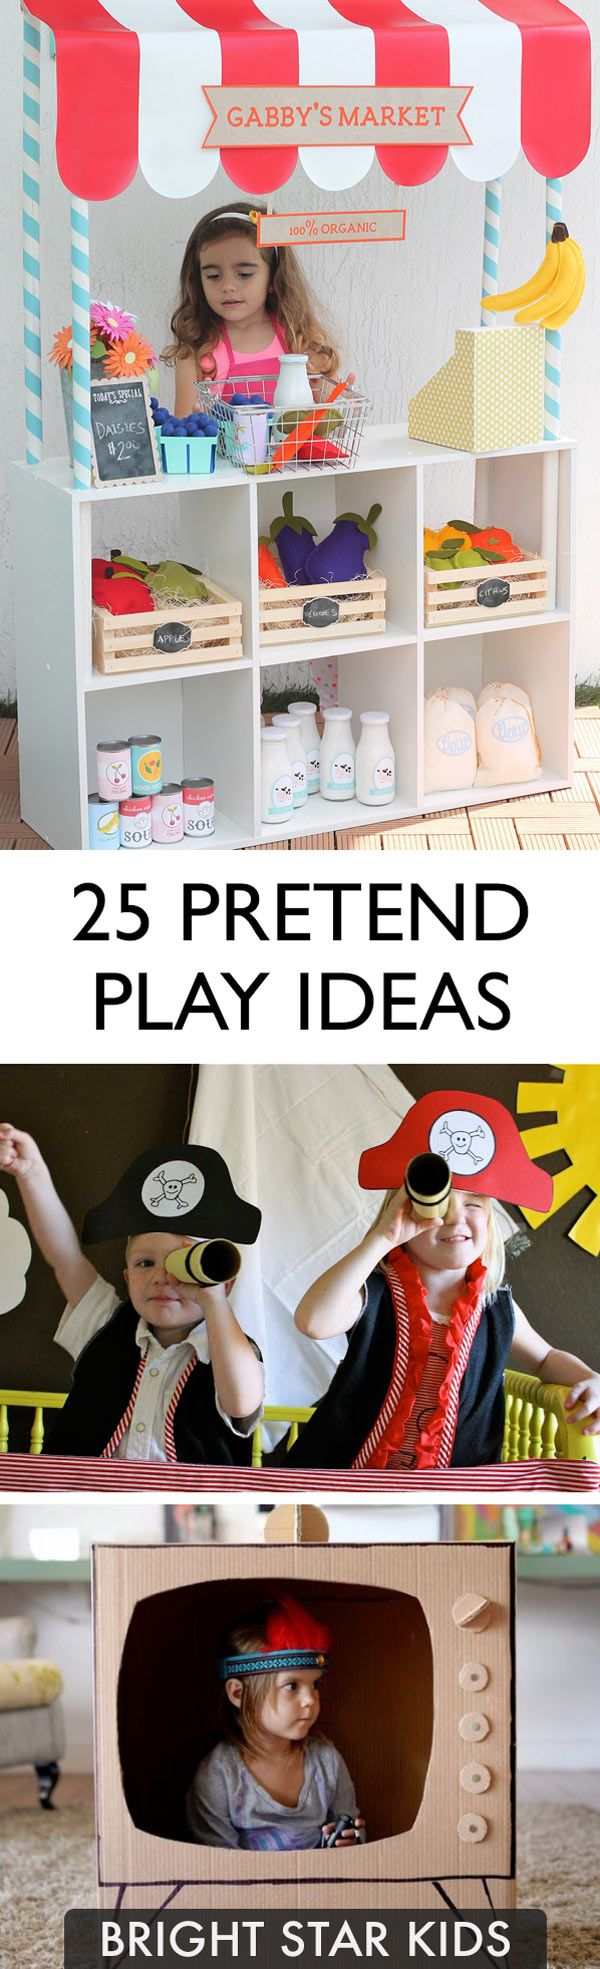 Pretend playing is good for your child's imagination, and develops vital social, language, thinking and emotional skills. For more kid related ideas, go to: blog.brightstarkids.com.au #pretendplay #imaginaryplay #playideas